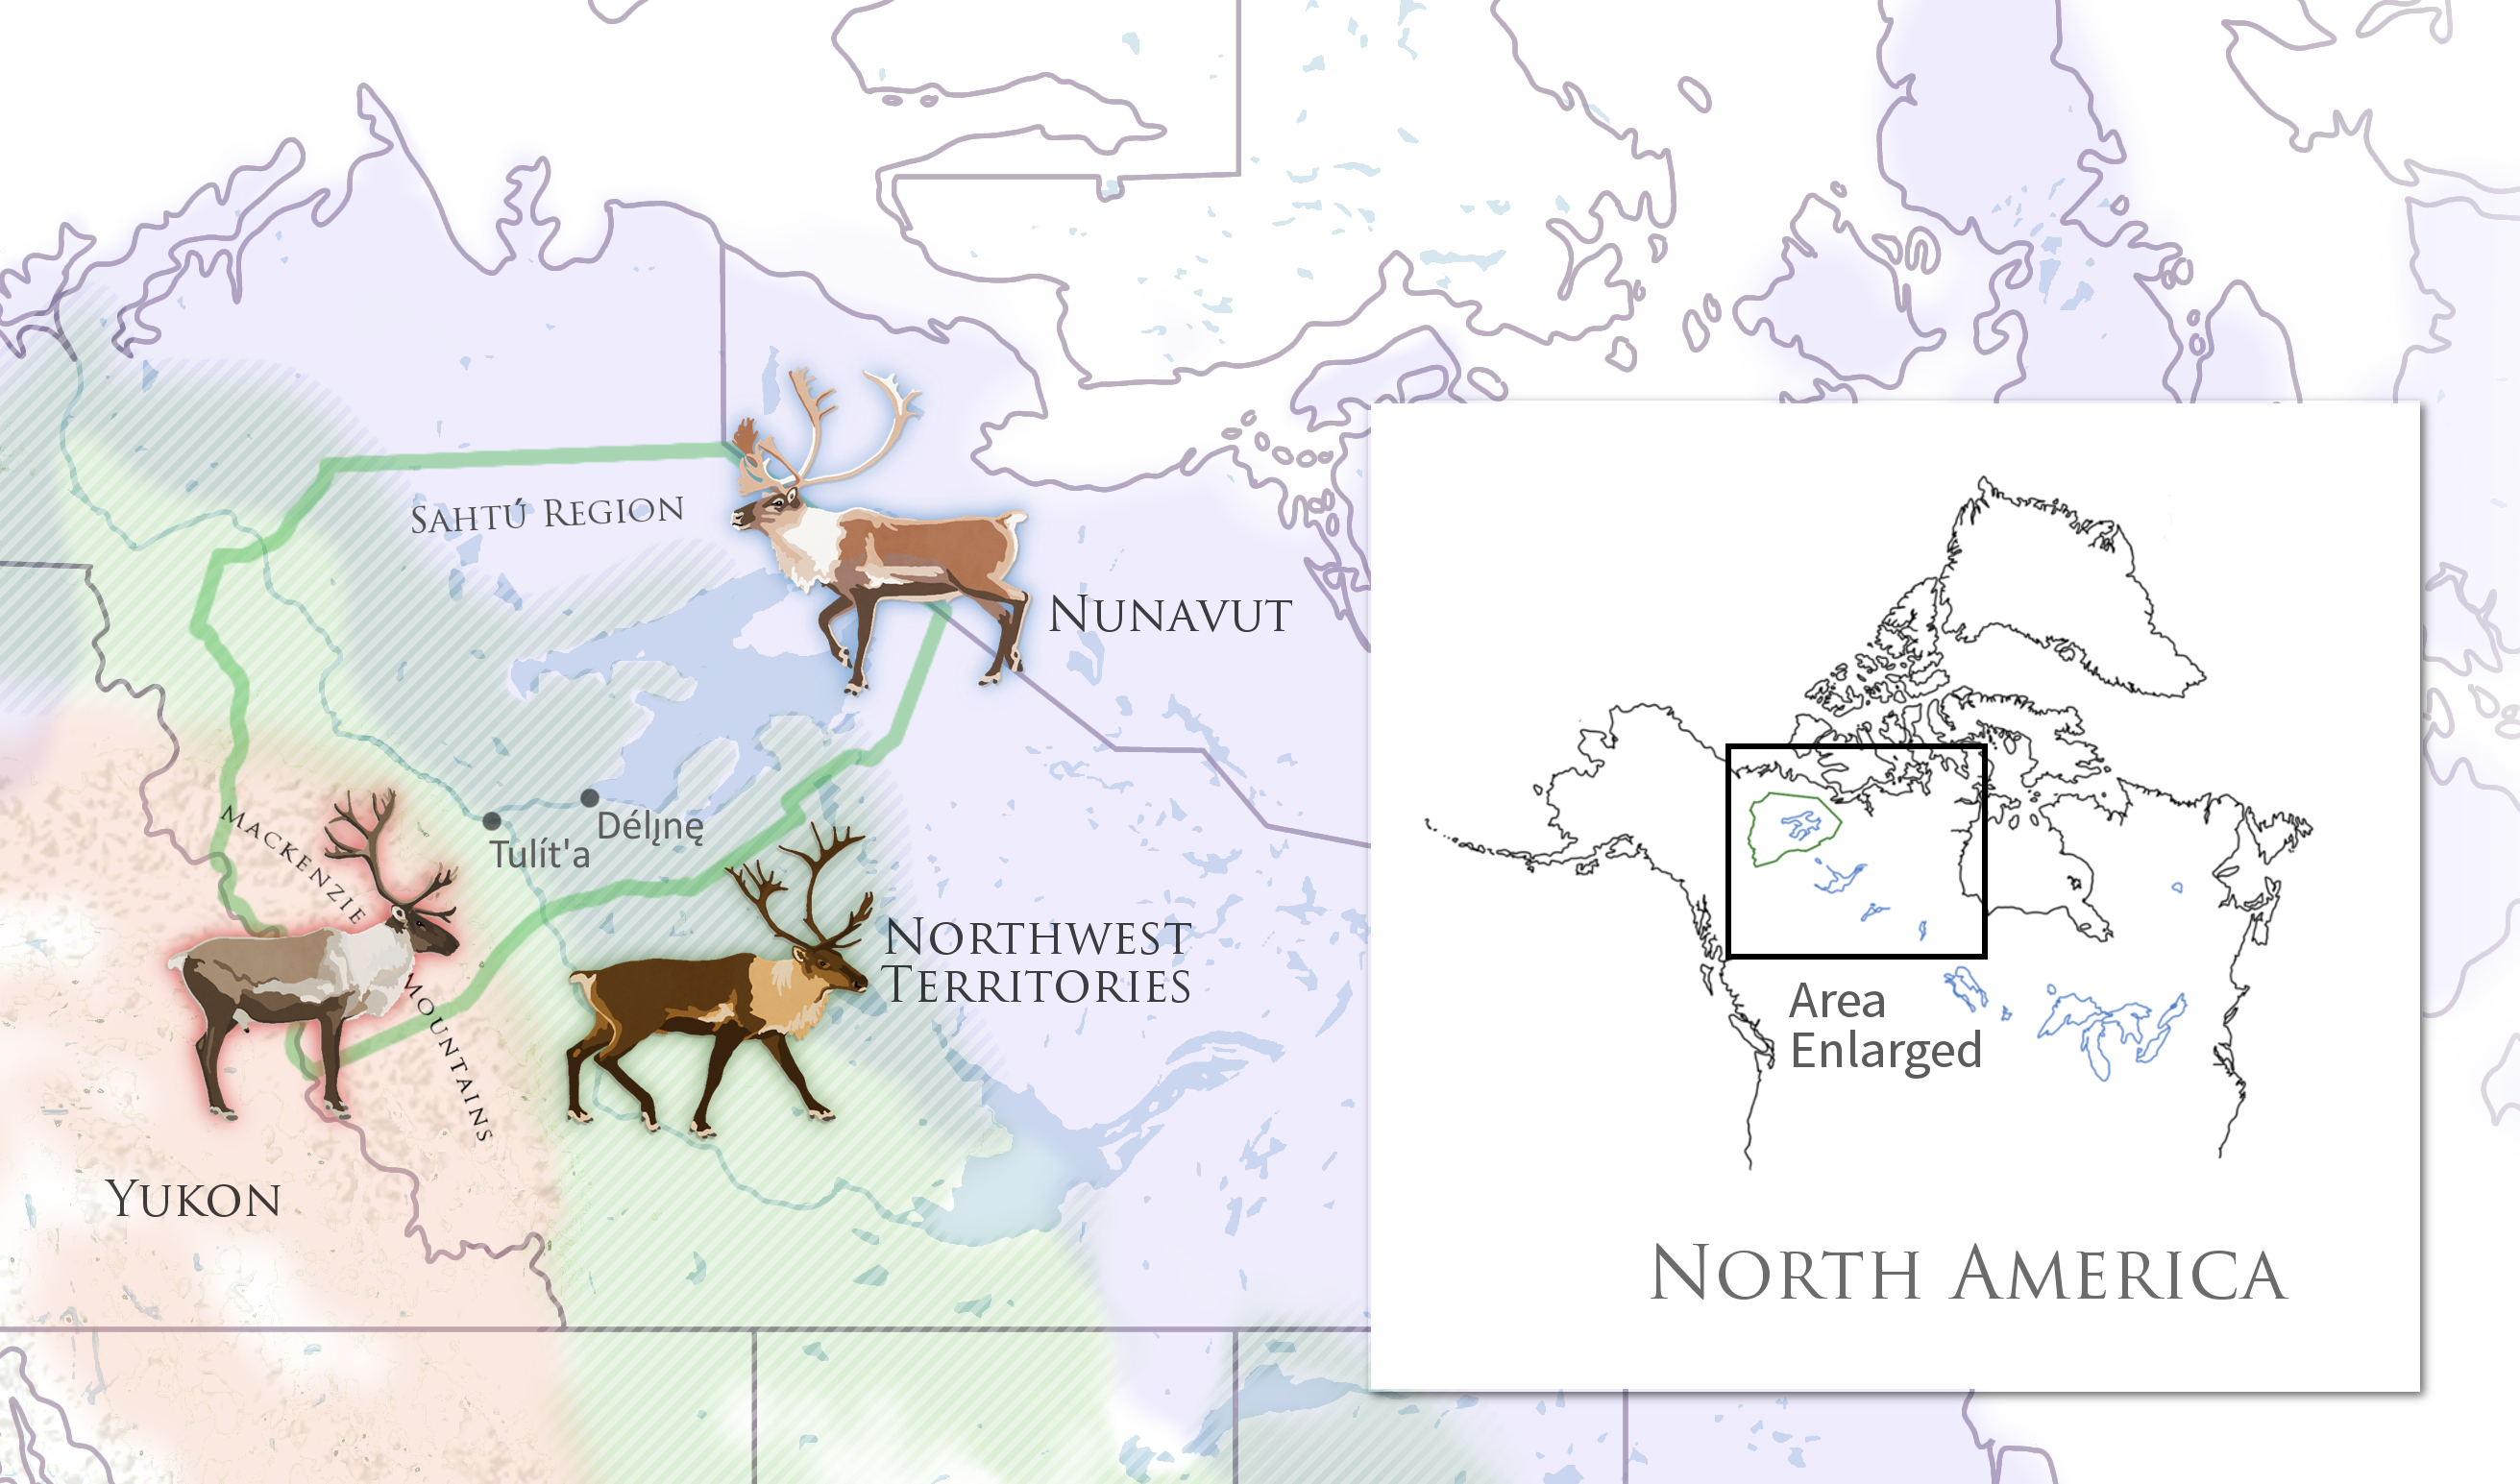 Map showing caribou subspecies distribution in the Sahtu region of Northwest Territories